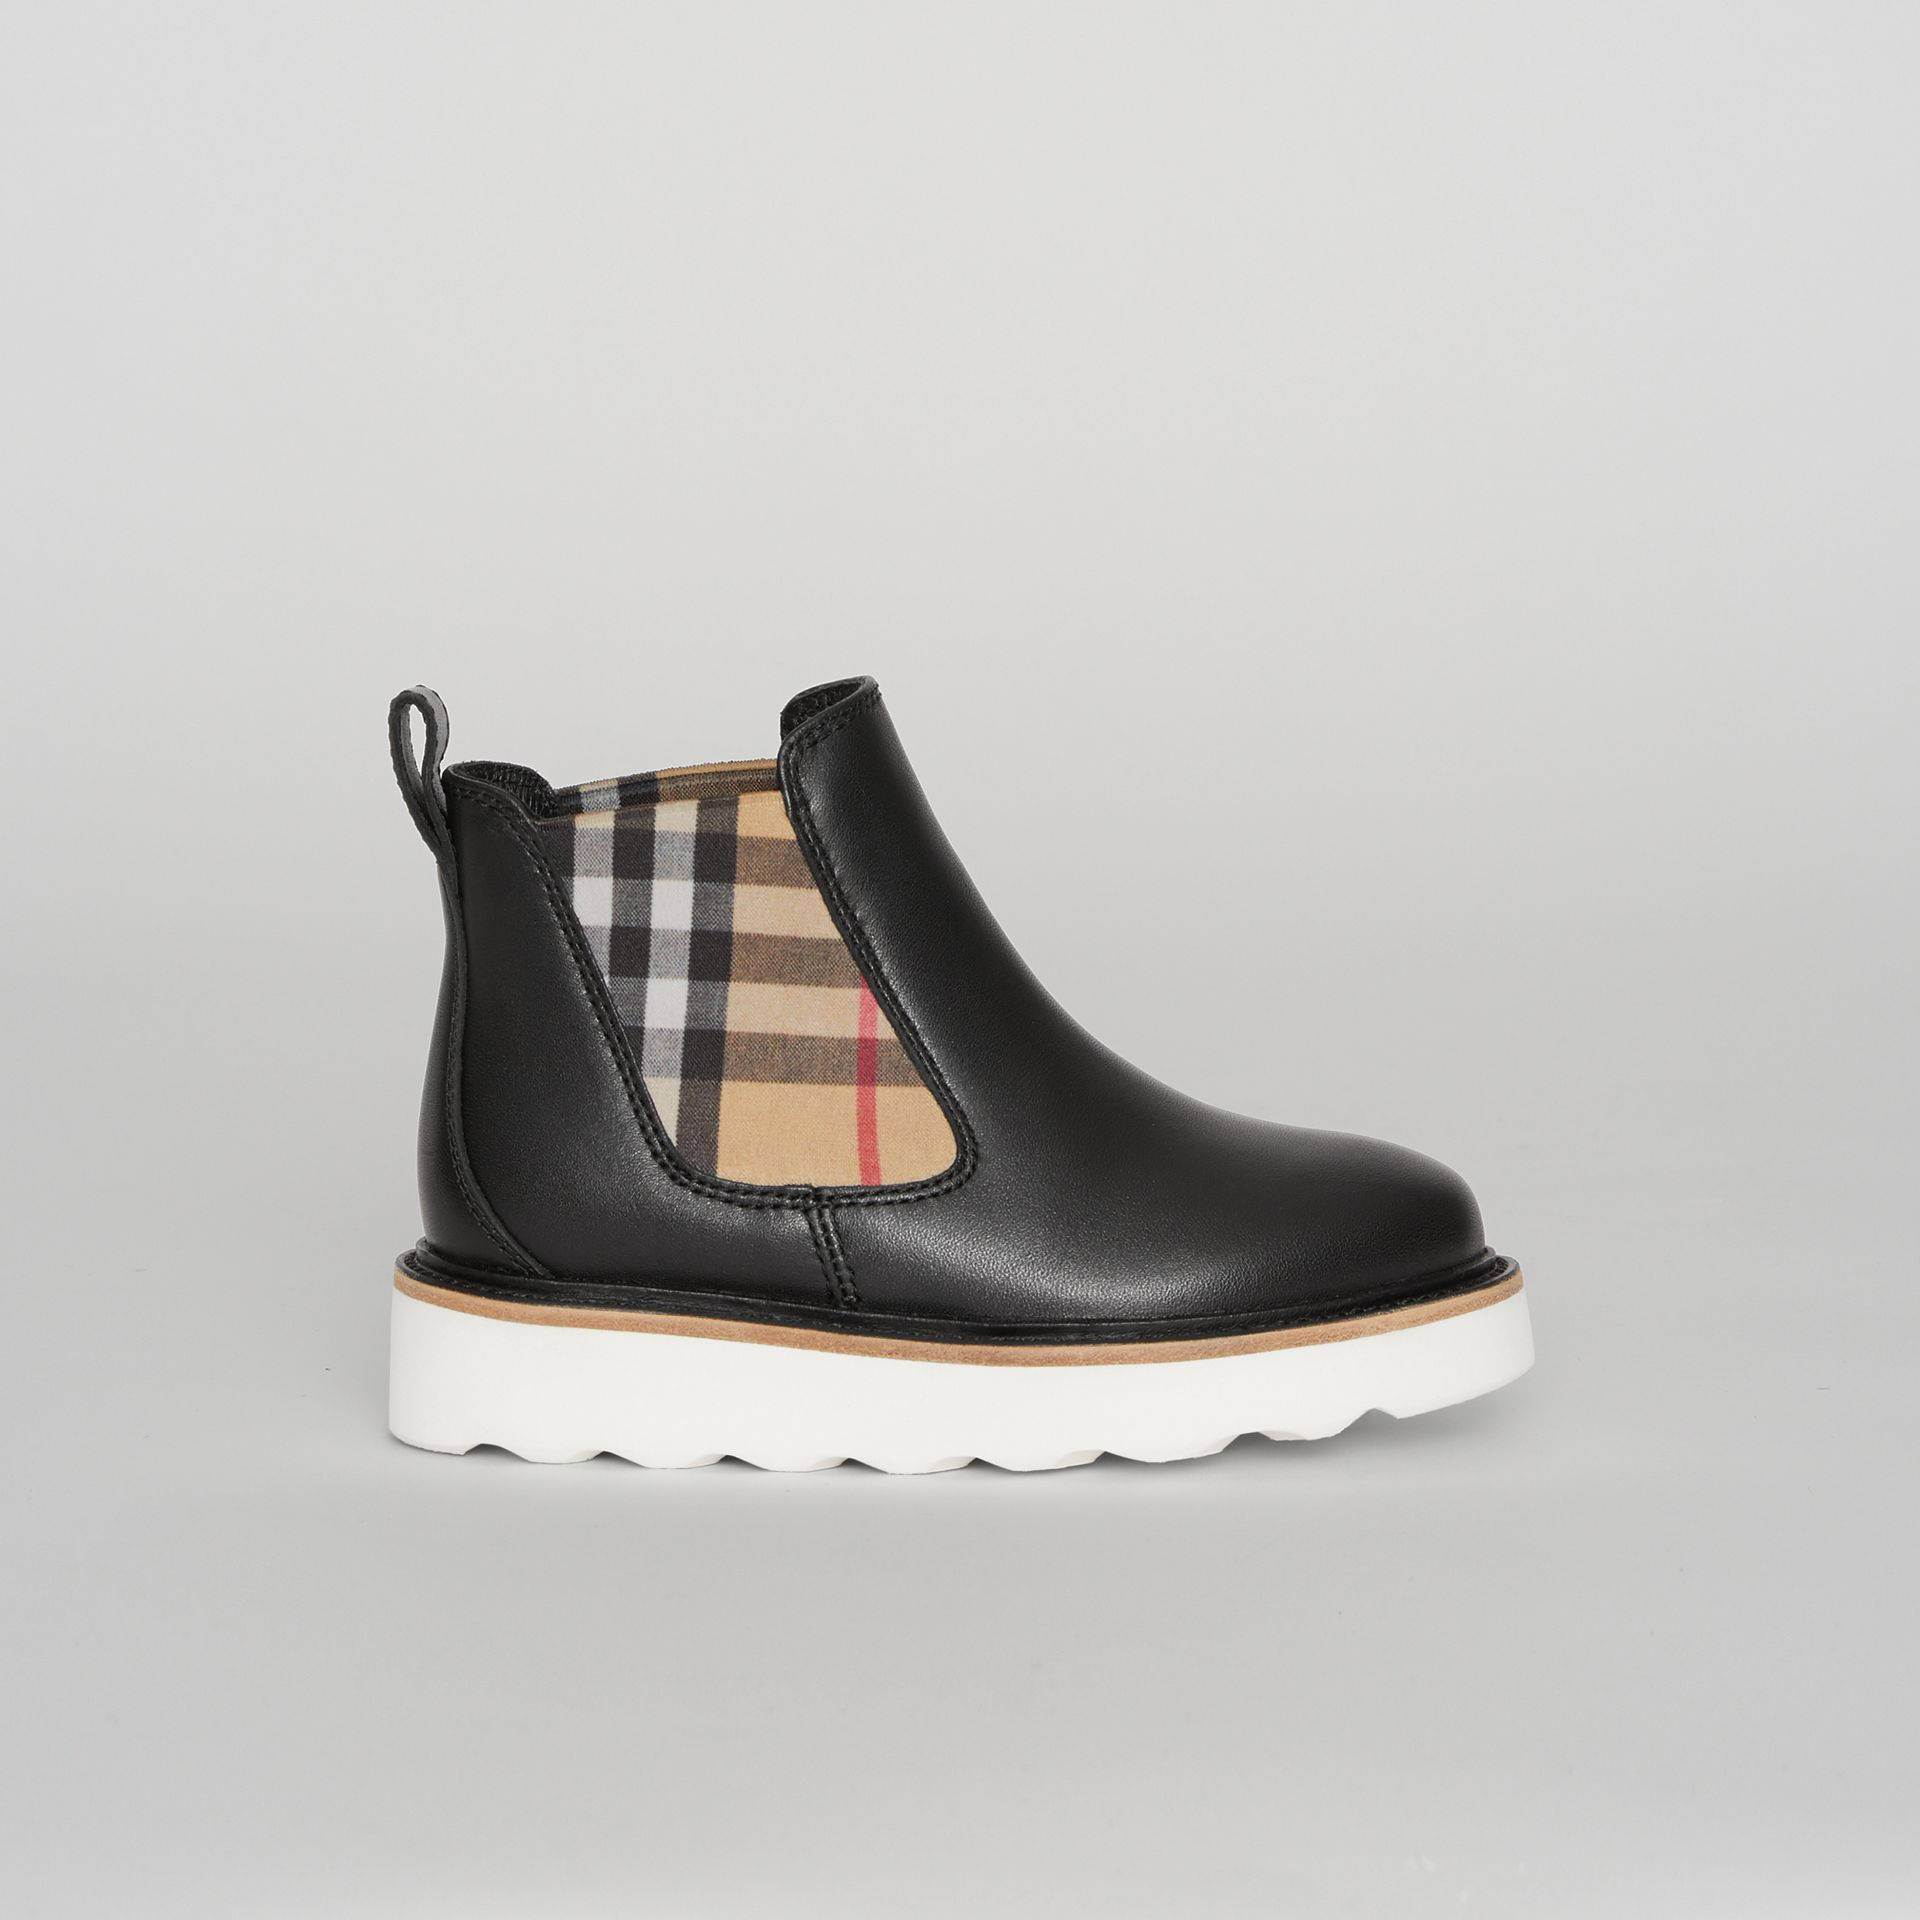 Bottines Chelsea en cuir avec détails Vintage check (Noir) | Burberry - photo de la galerie 3